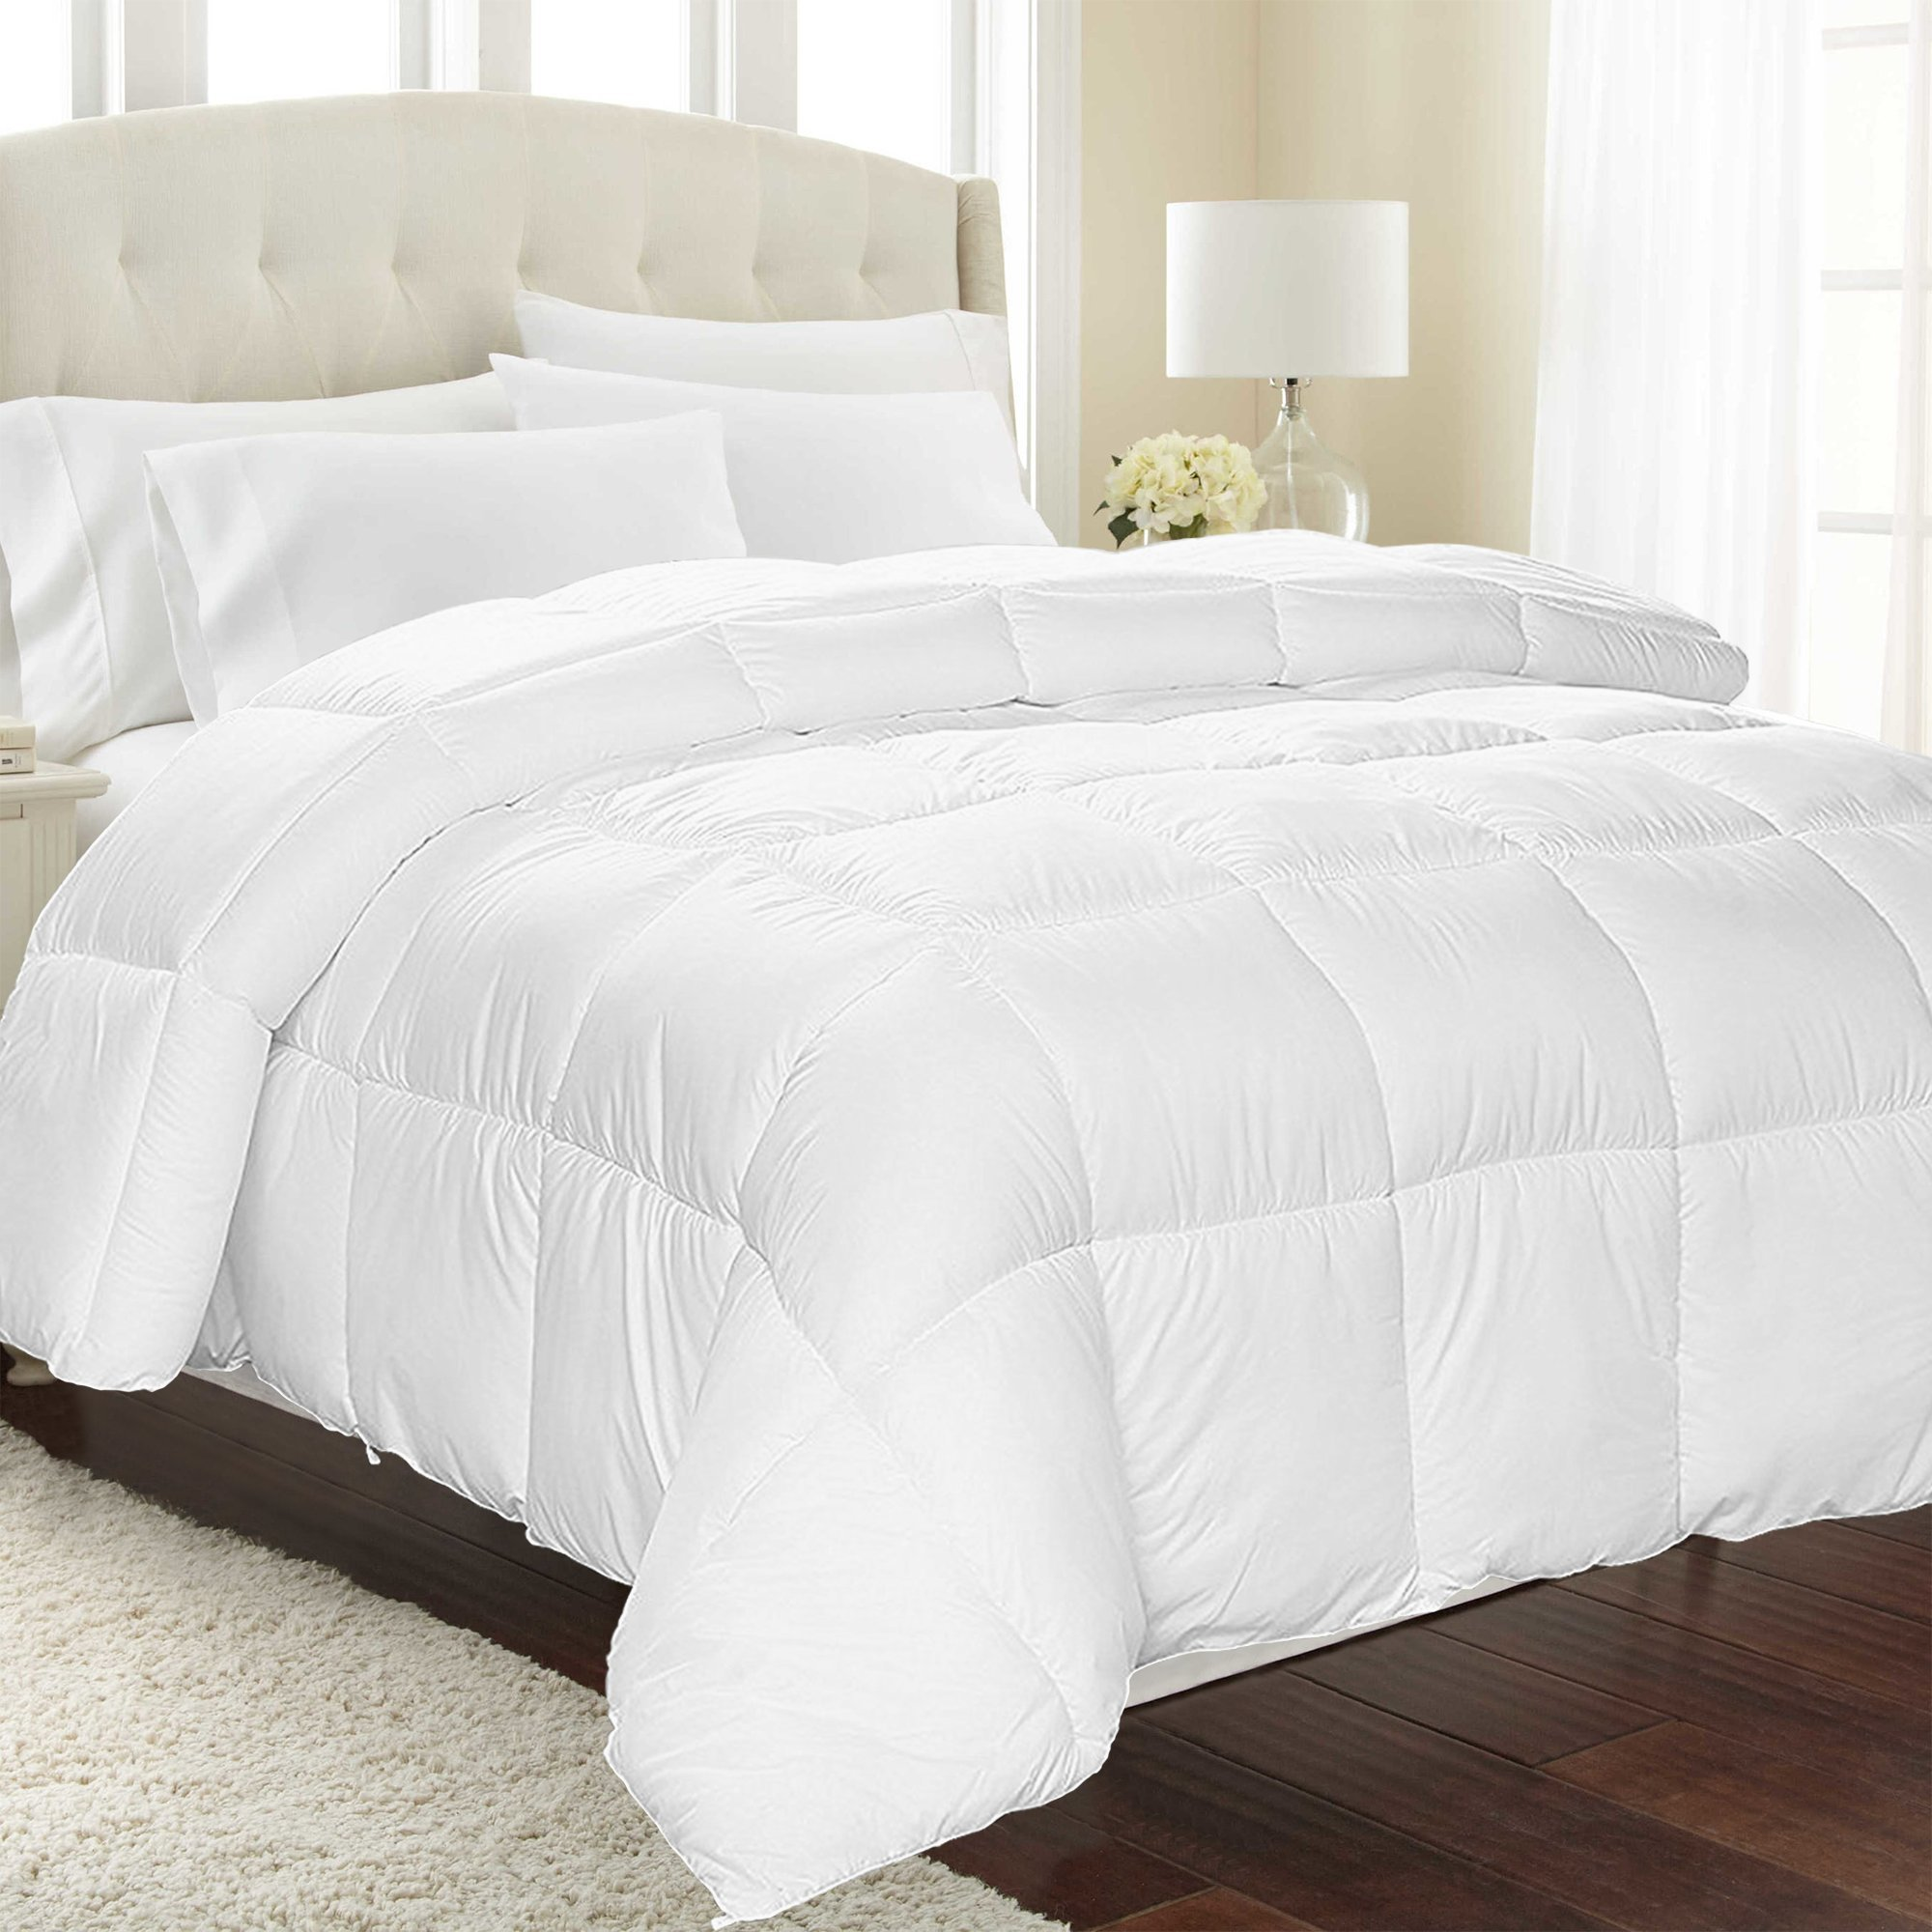 Equinox All-Season White Quilted Comforter - Goose Down Alternative Queen Comforter - Duvet Insert Set - Machine Washable - Hypoallergenic - Plush Microfiber Fill (350 GSM) by Equinox International